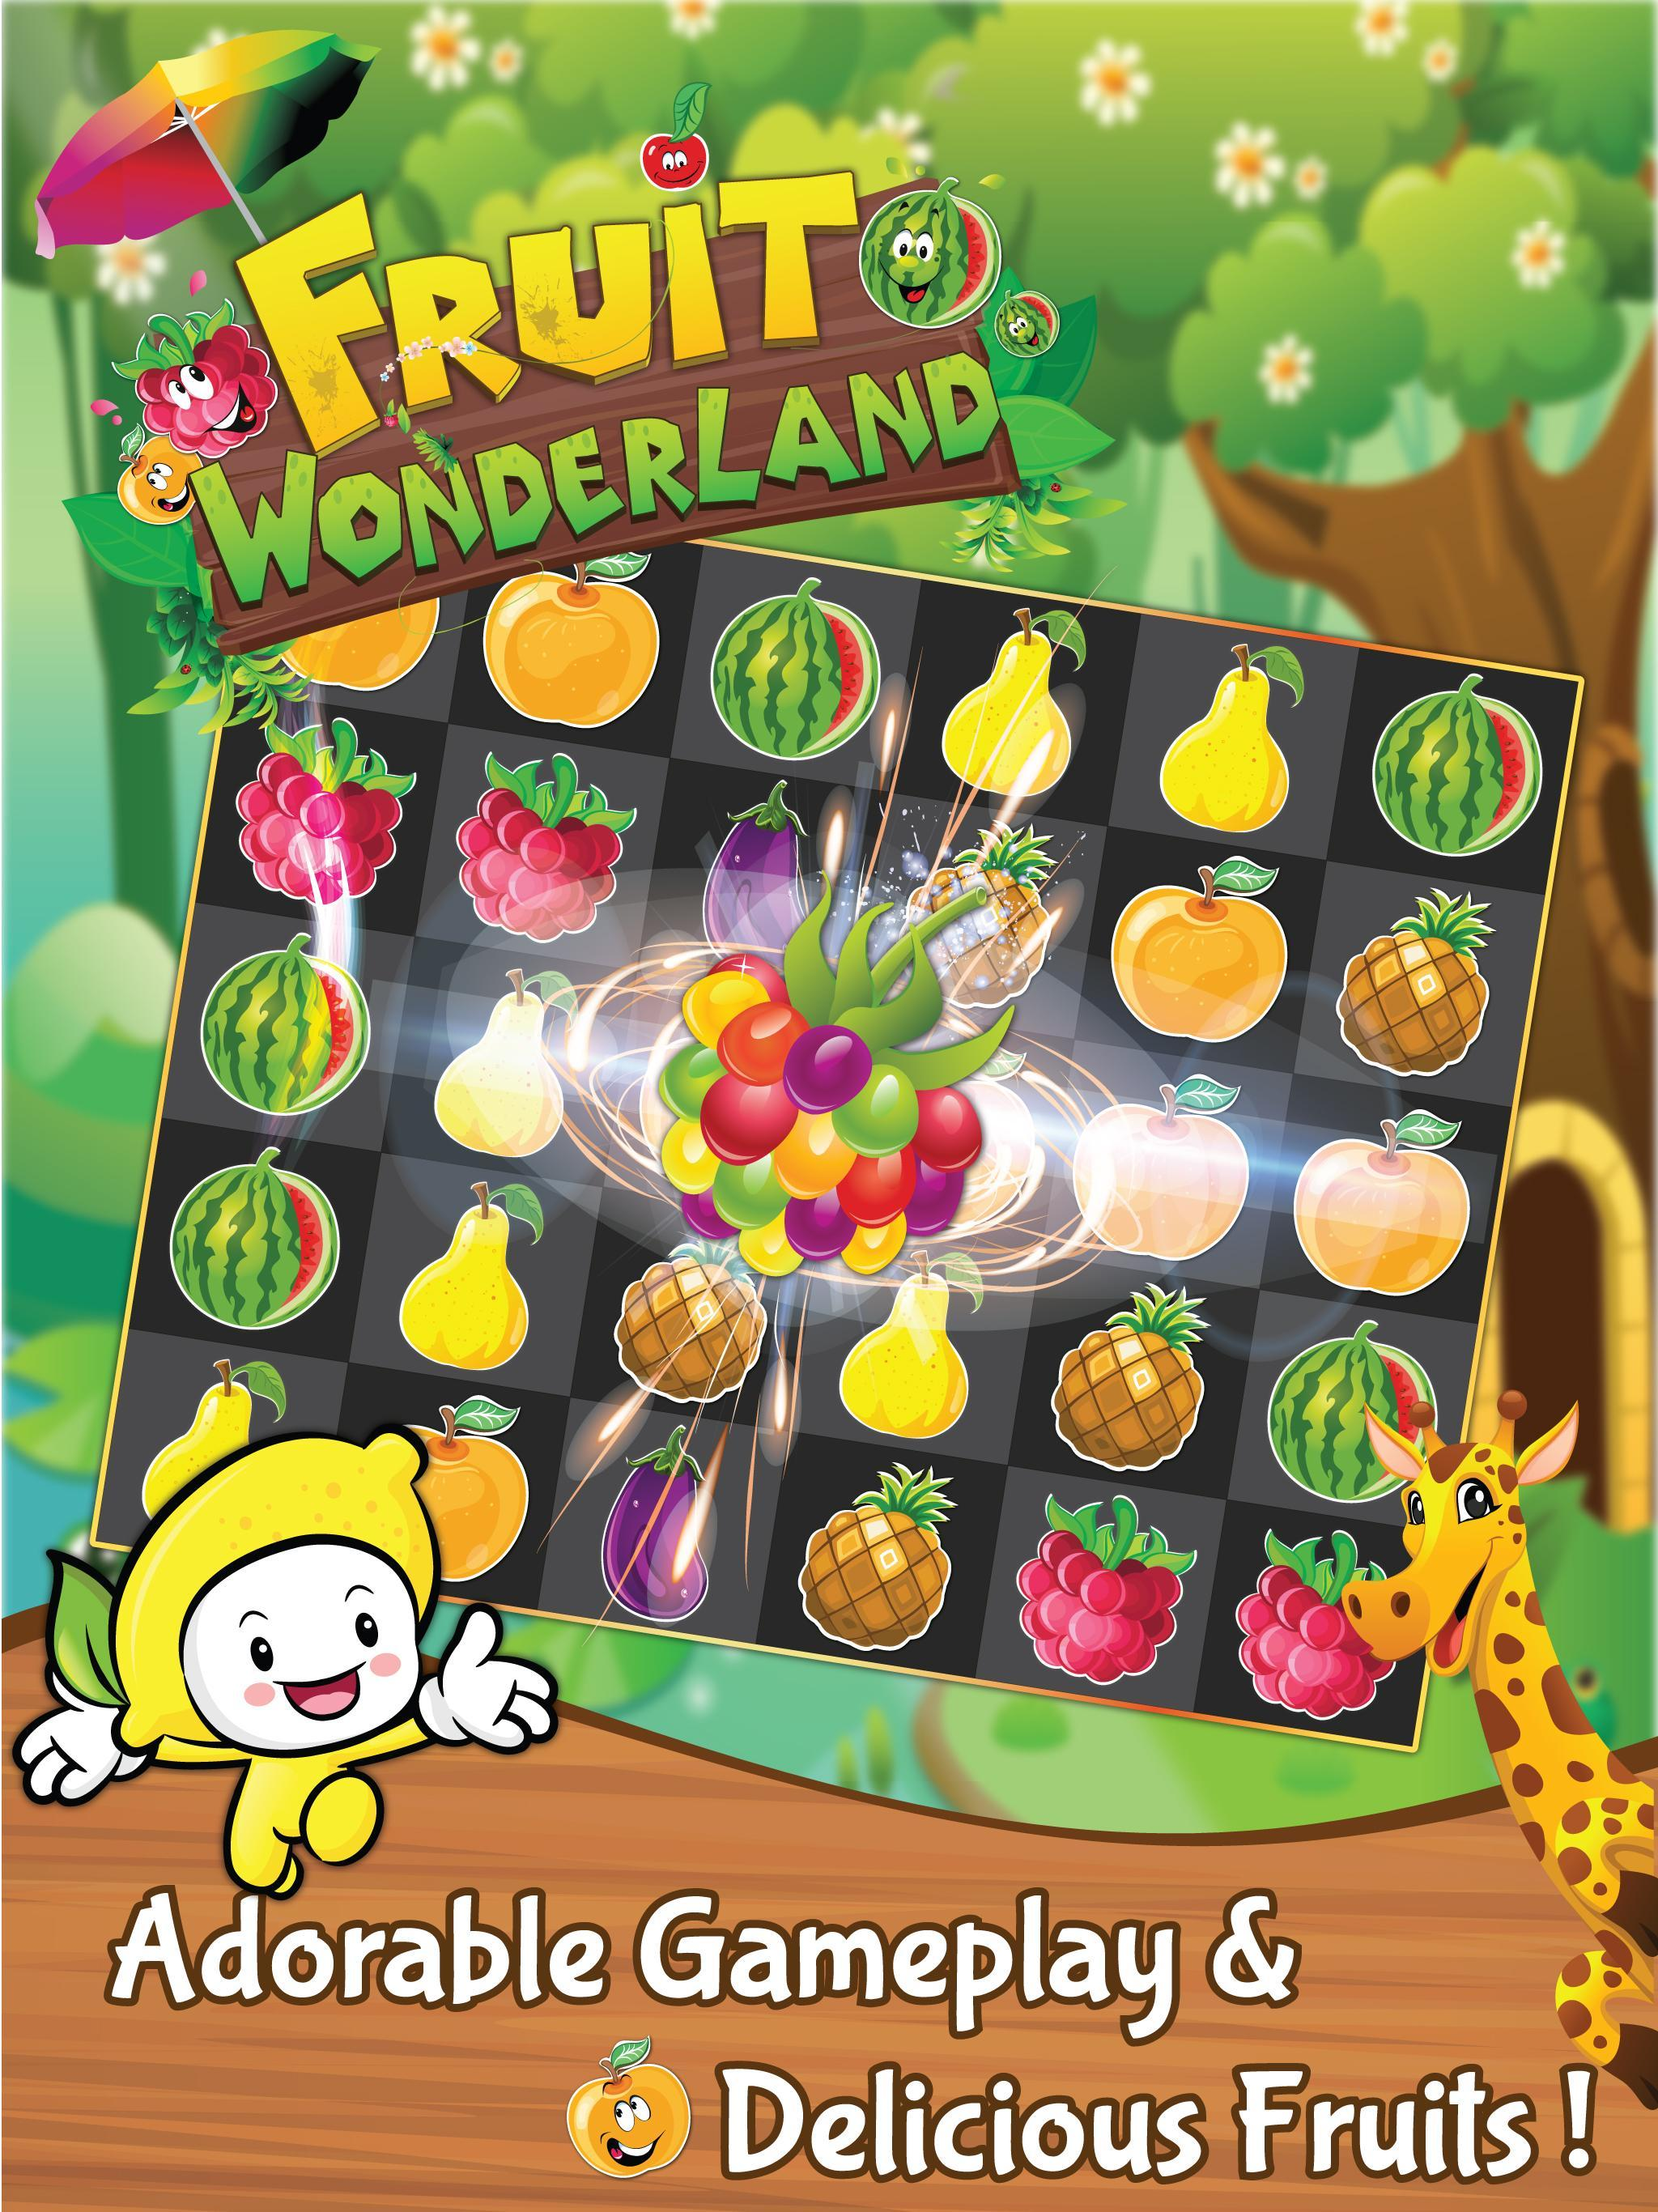 Match 3 Fruit Wonderland Puzzle - Jungle Adventure 1.101 Screenshot 7